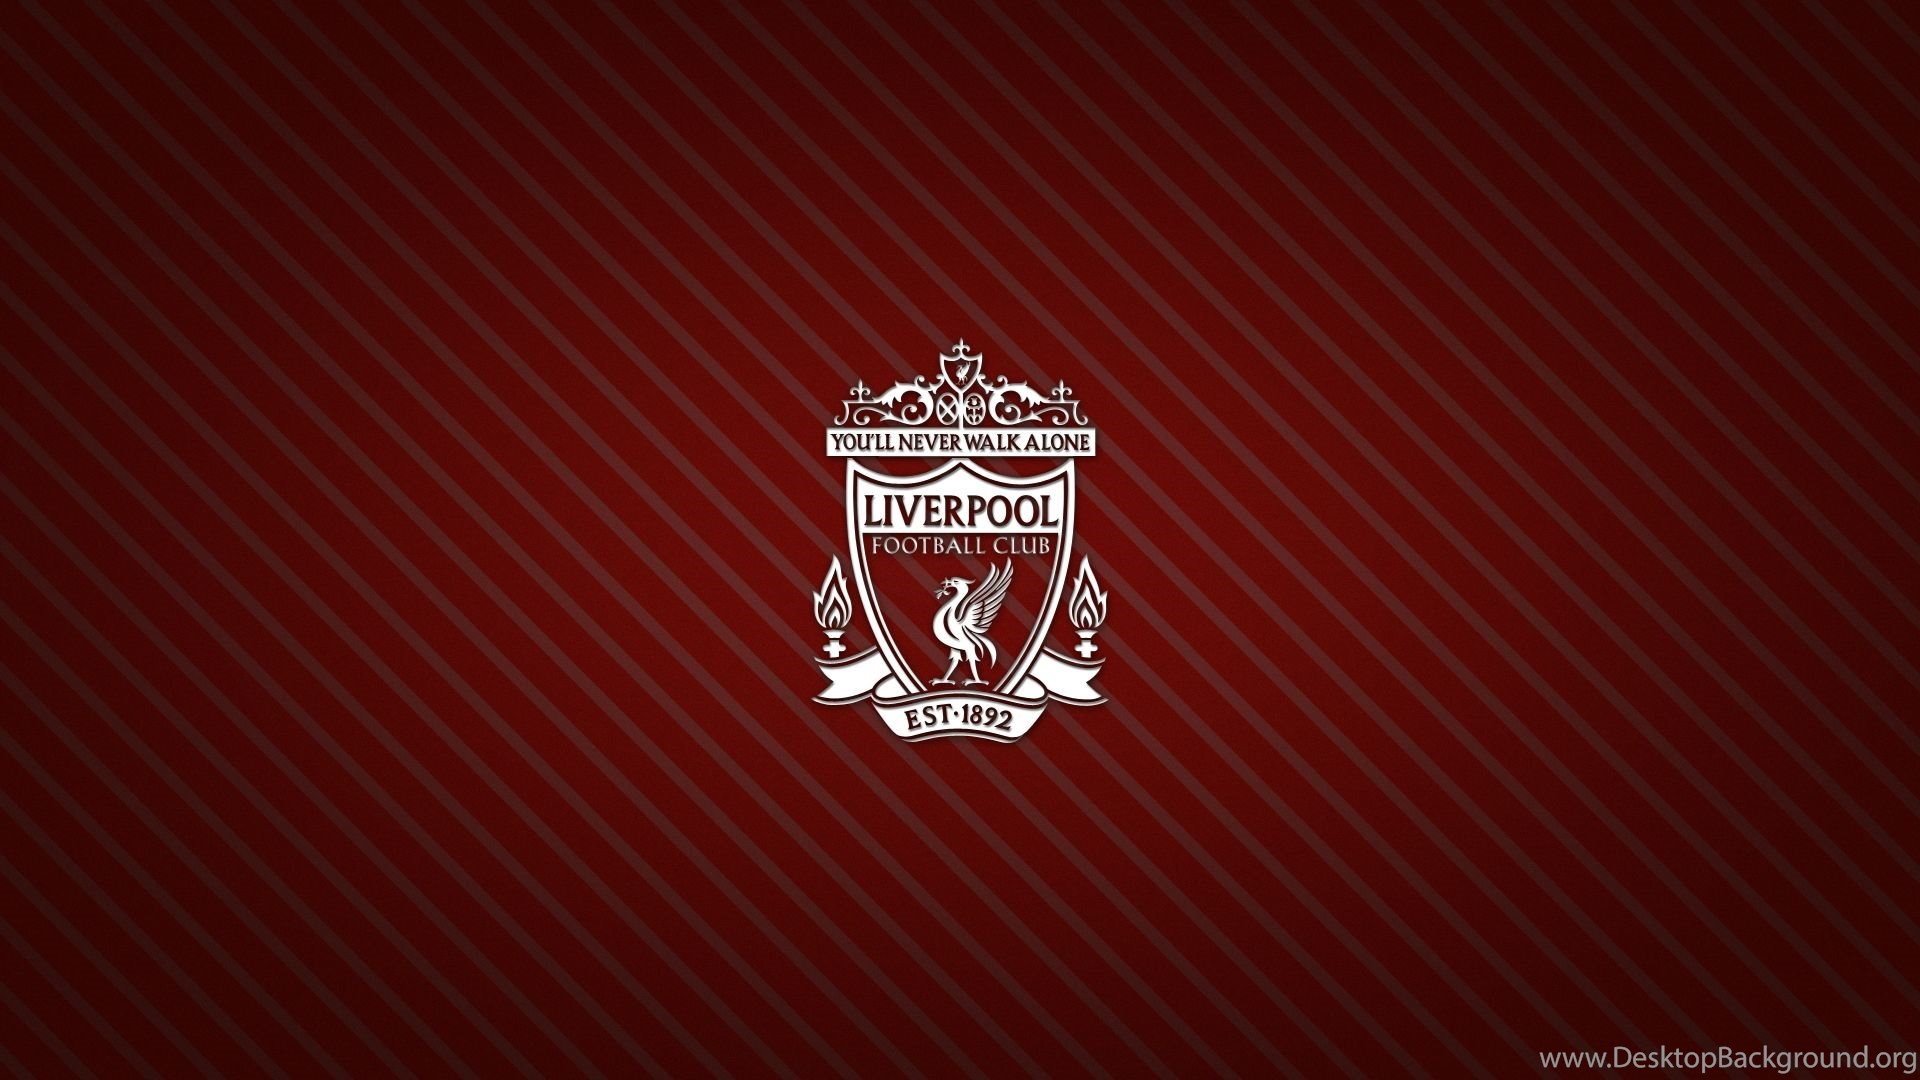 liverpool f.c. wallpapers and theme for windows 10 desktop background